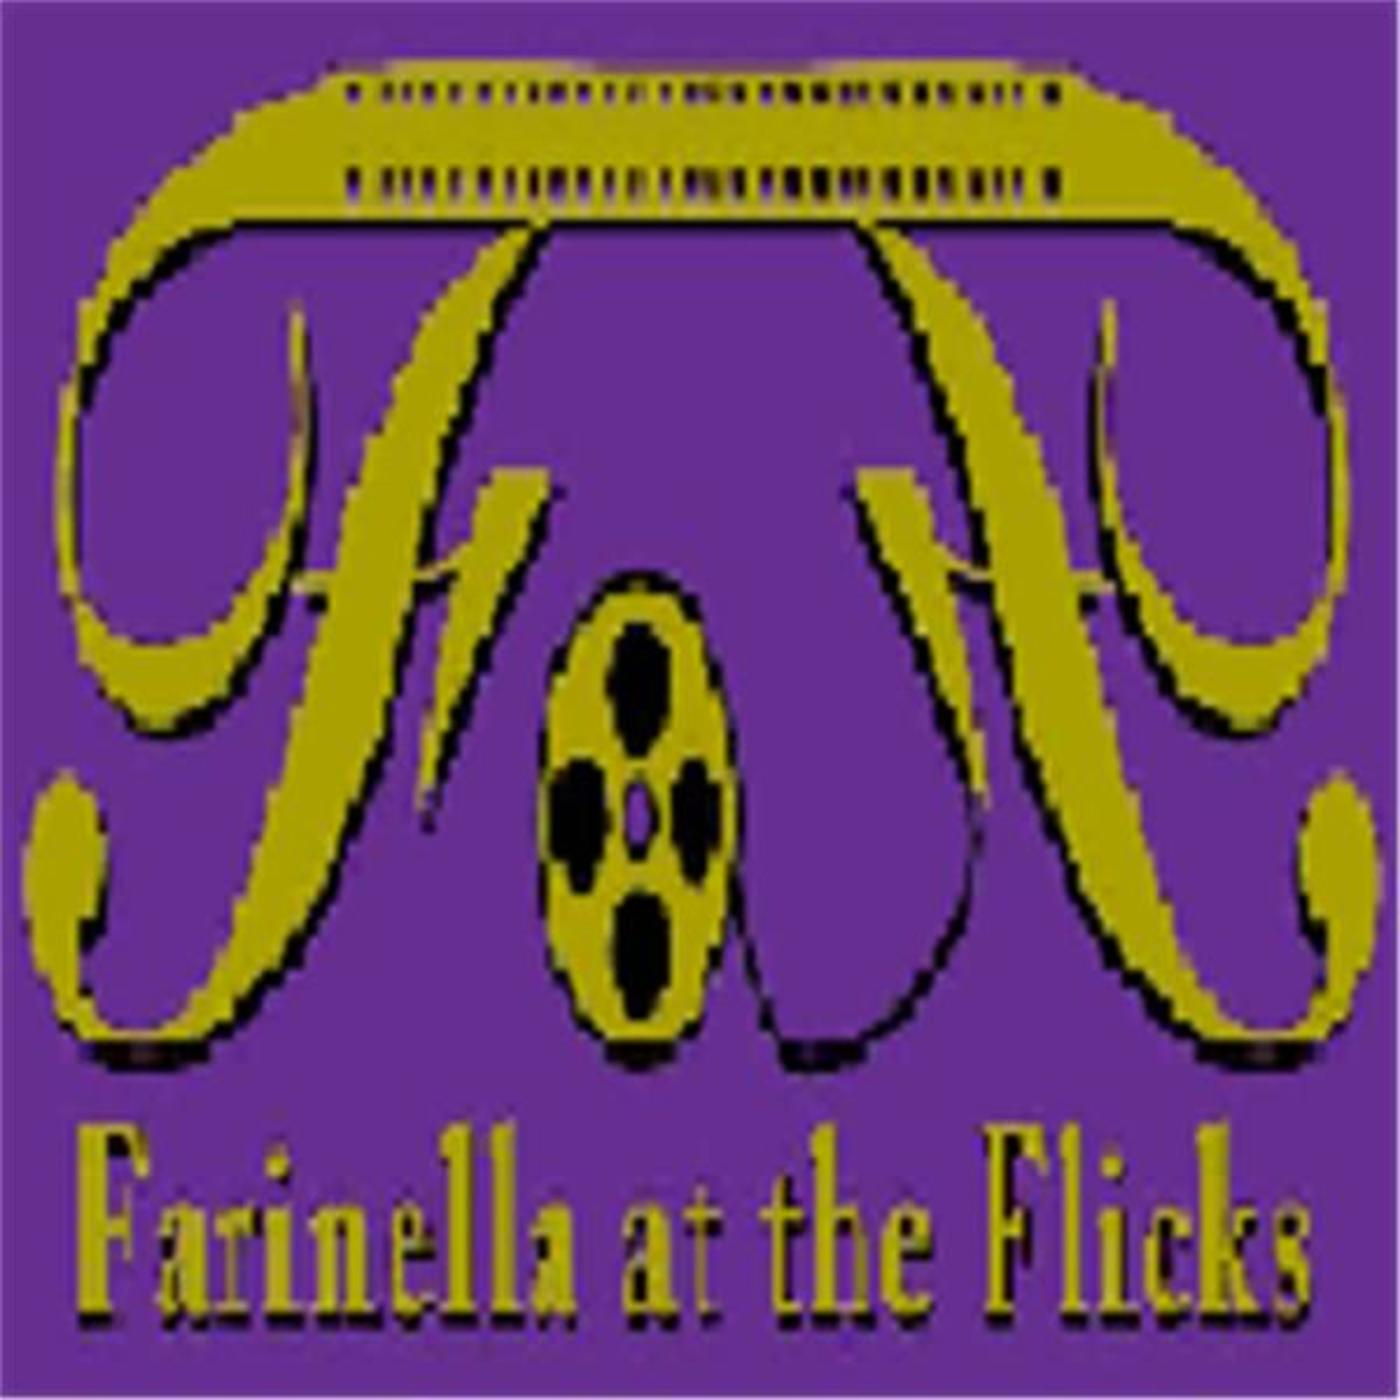 Farinella at the Flicks and More